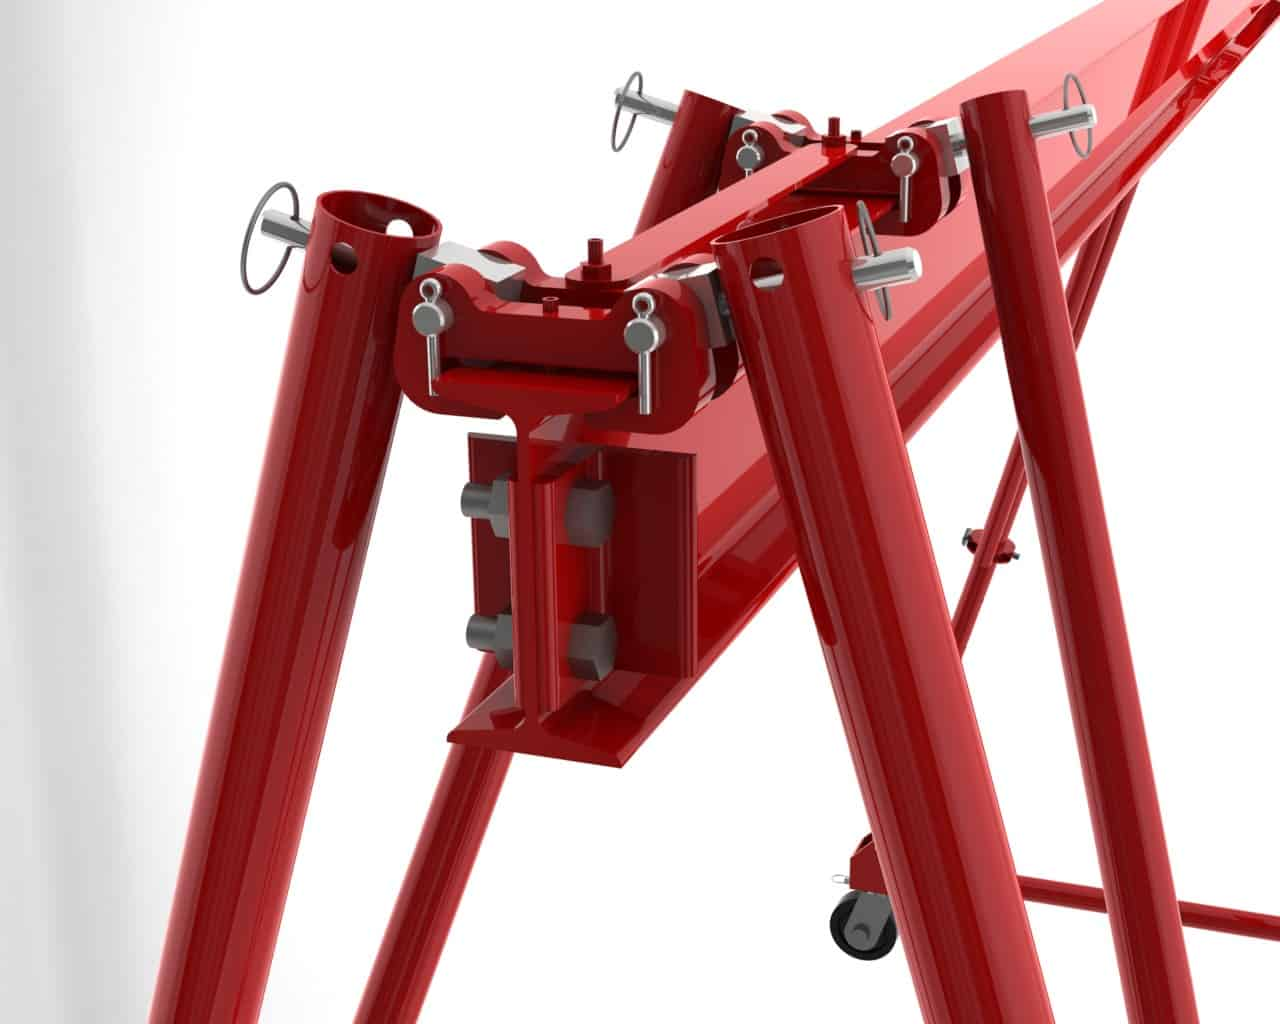 Wallace Portable Gantry Crane Design - Patented Pinned-Joint Design